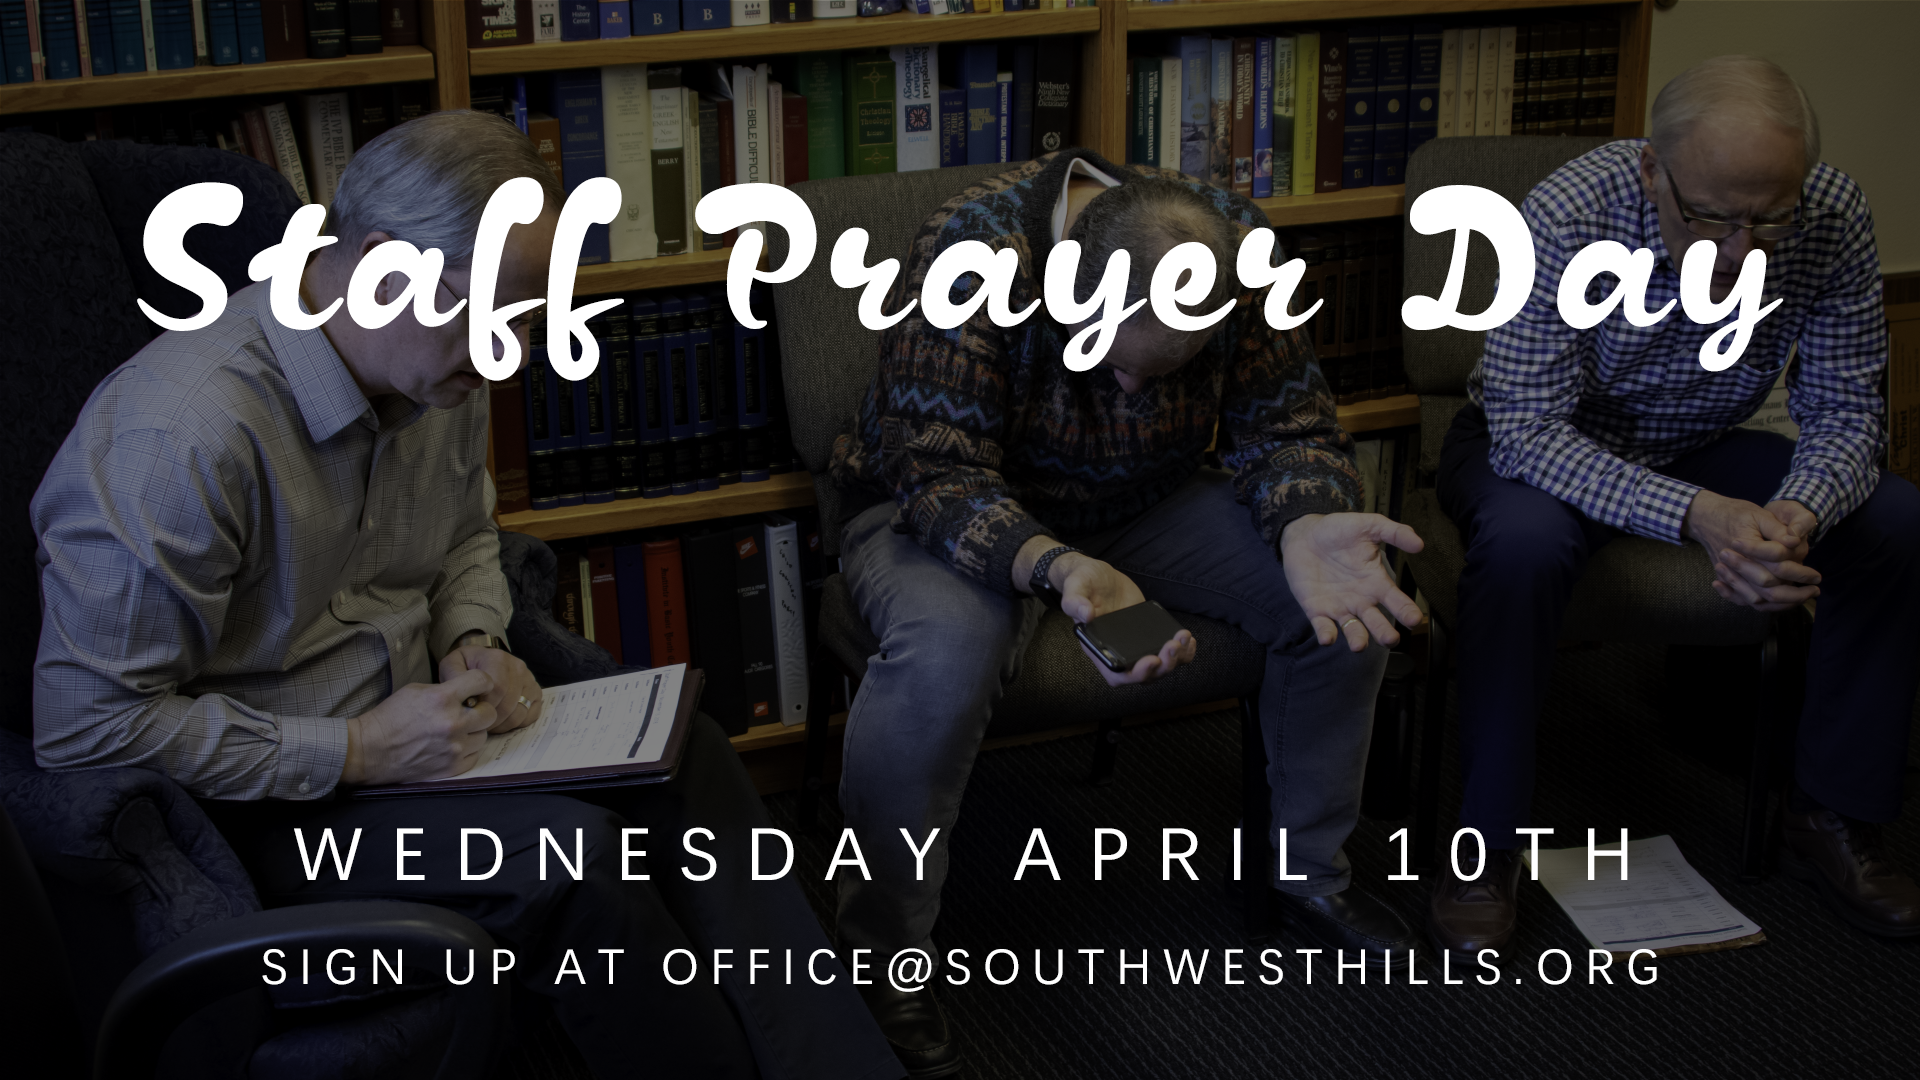 This Wednesday is our monthly staff prayer day! If you would like the staff to pray with you, email the church office, and we'll try to find you an open time slot.